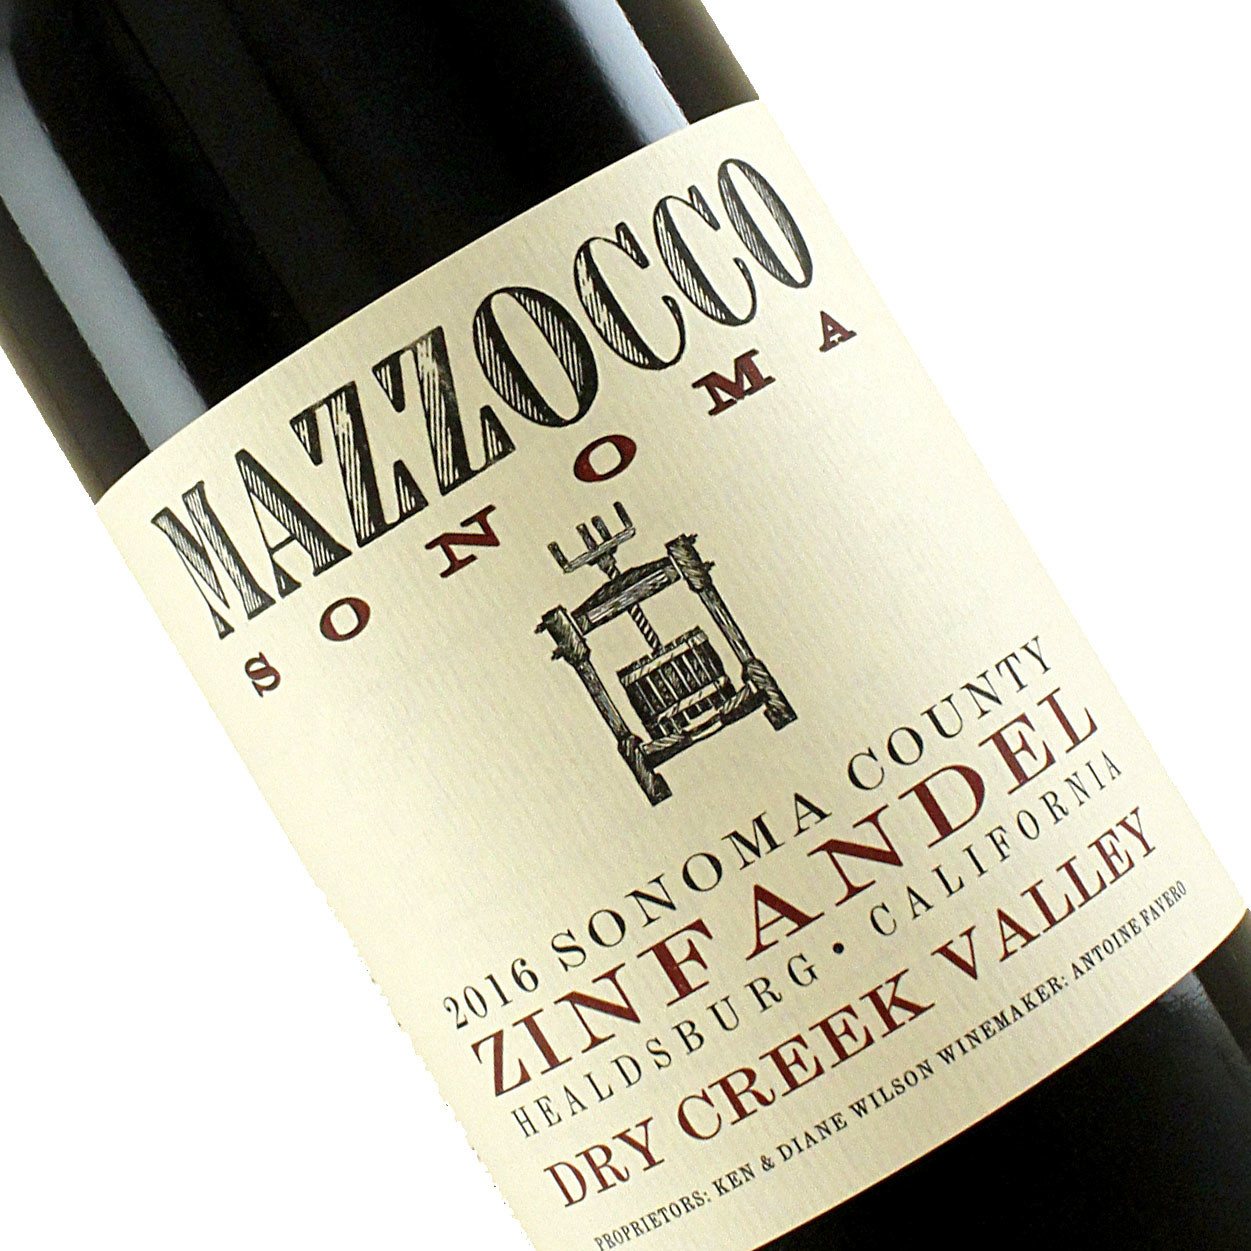 Mazzocco 2018 Zinfandel Dry Creek Valley, Sonoma County